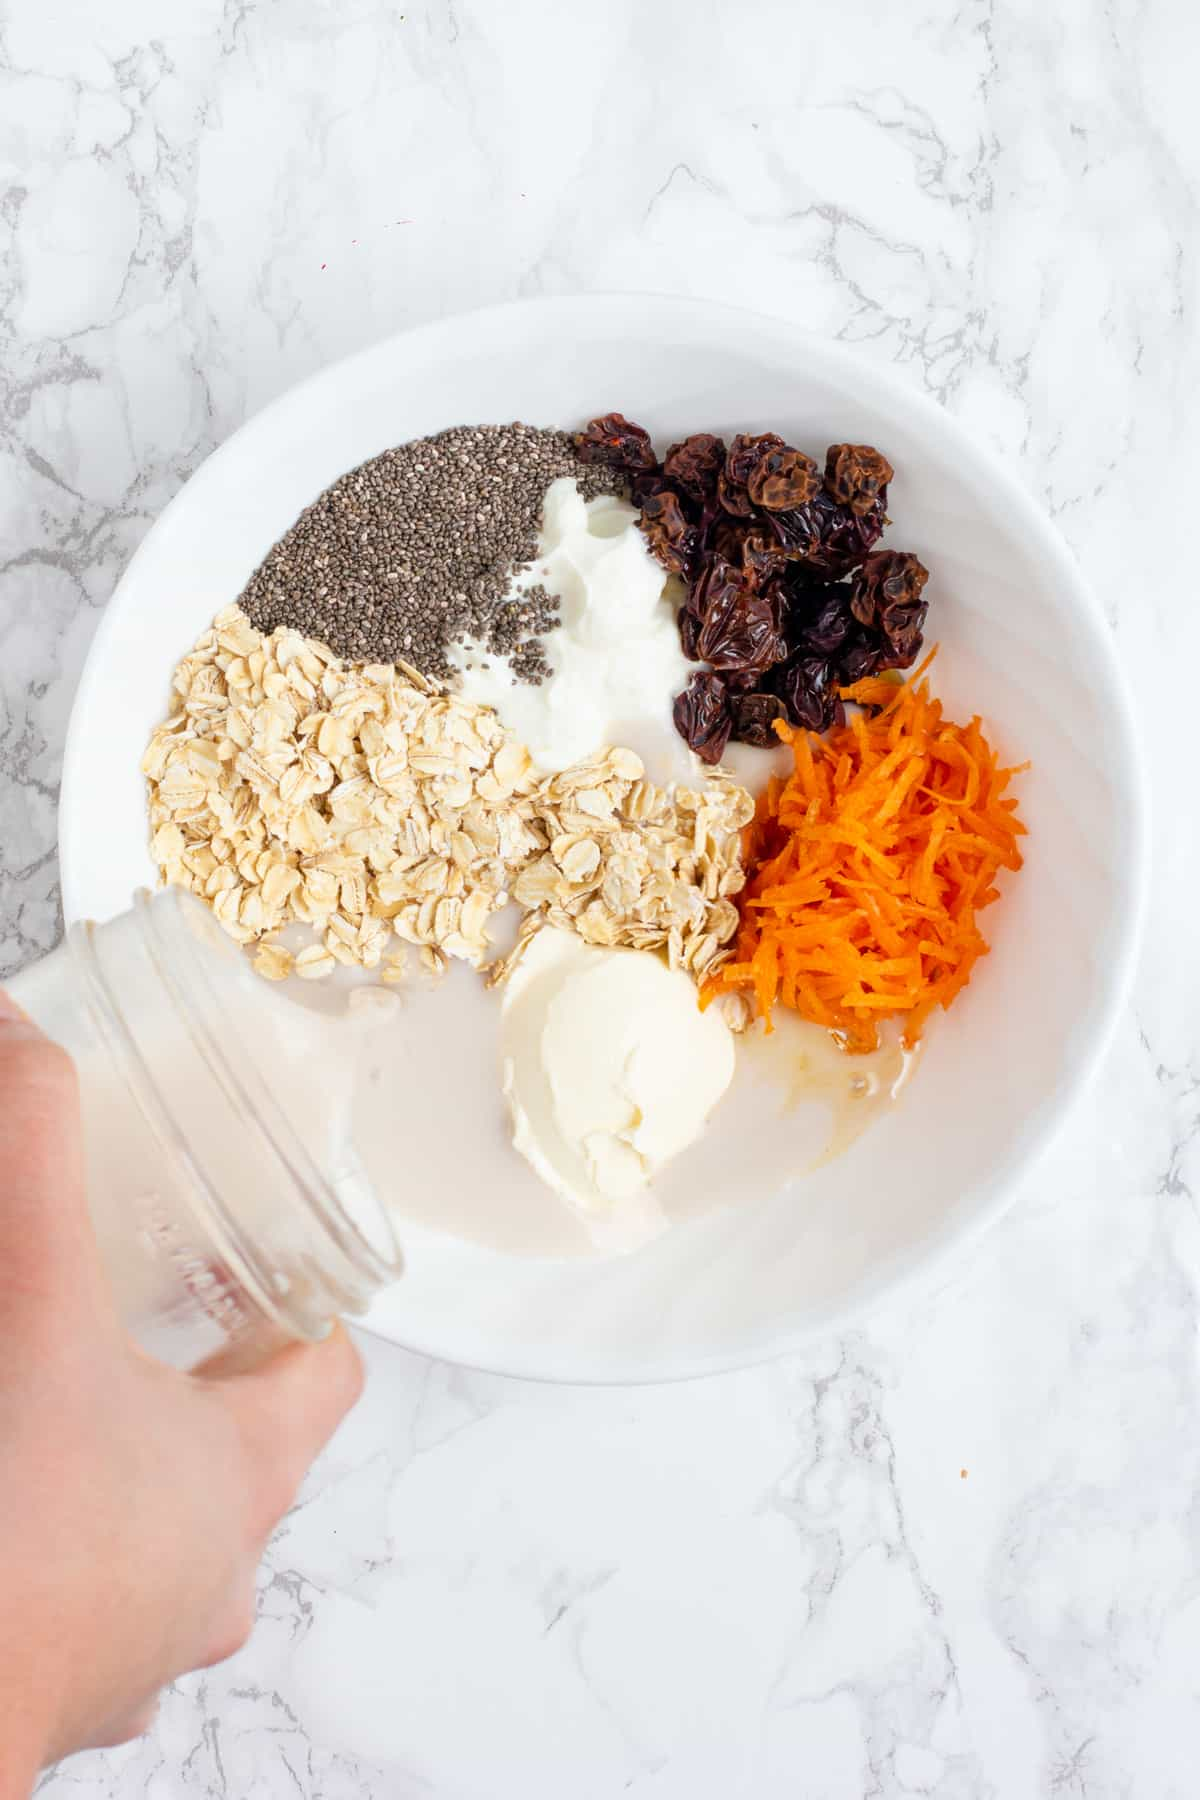 A hand pours milk from a glass jar into a white bowl. The white bowl is filled with other ingredients, including cream cheese, yogurt, shredded carrots, raisins, chia seeds, and rolled oats.